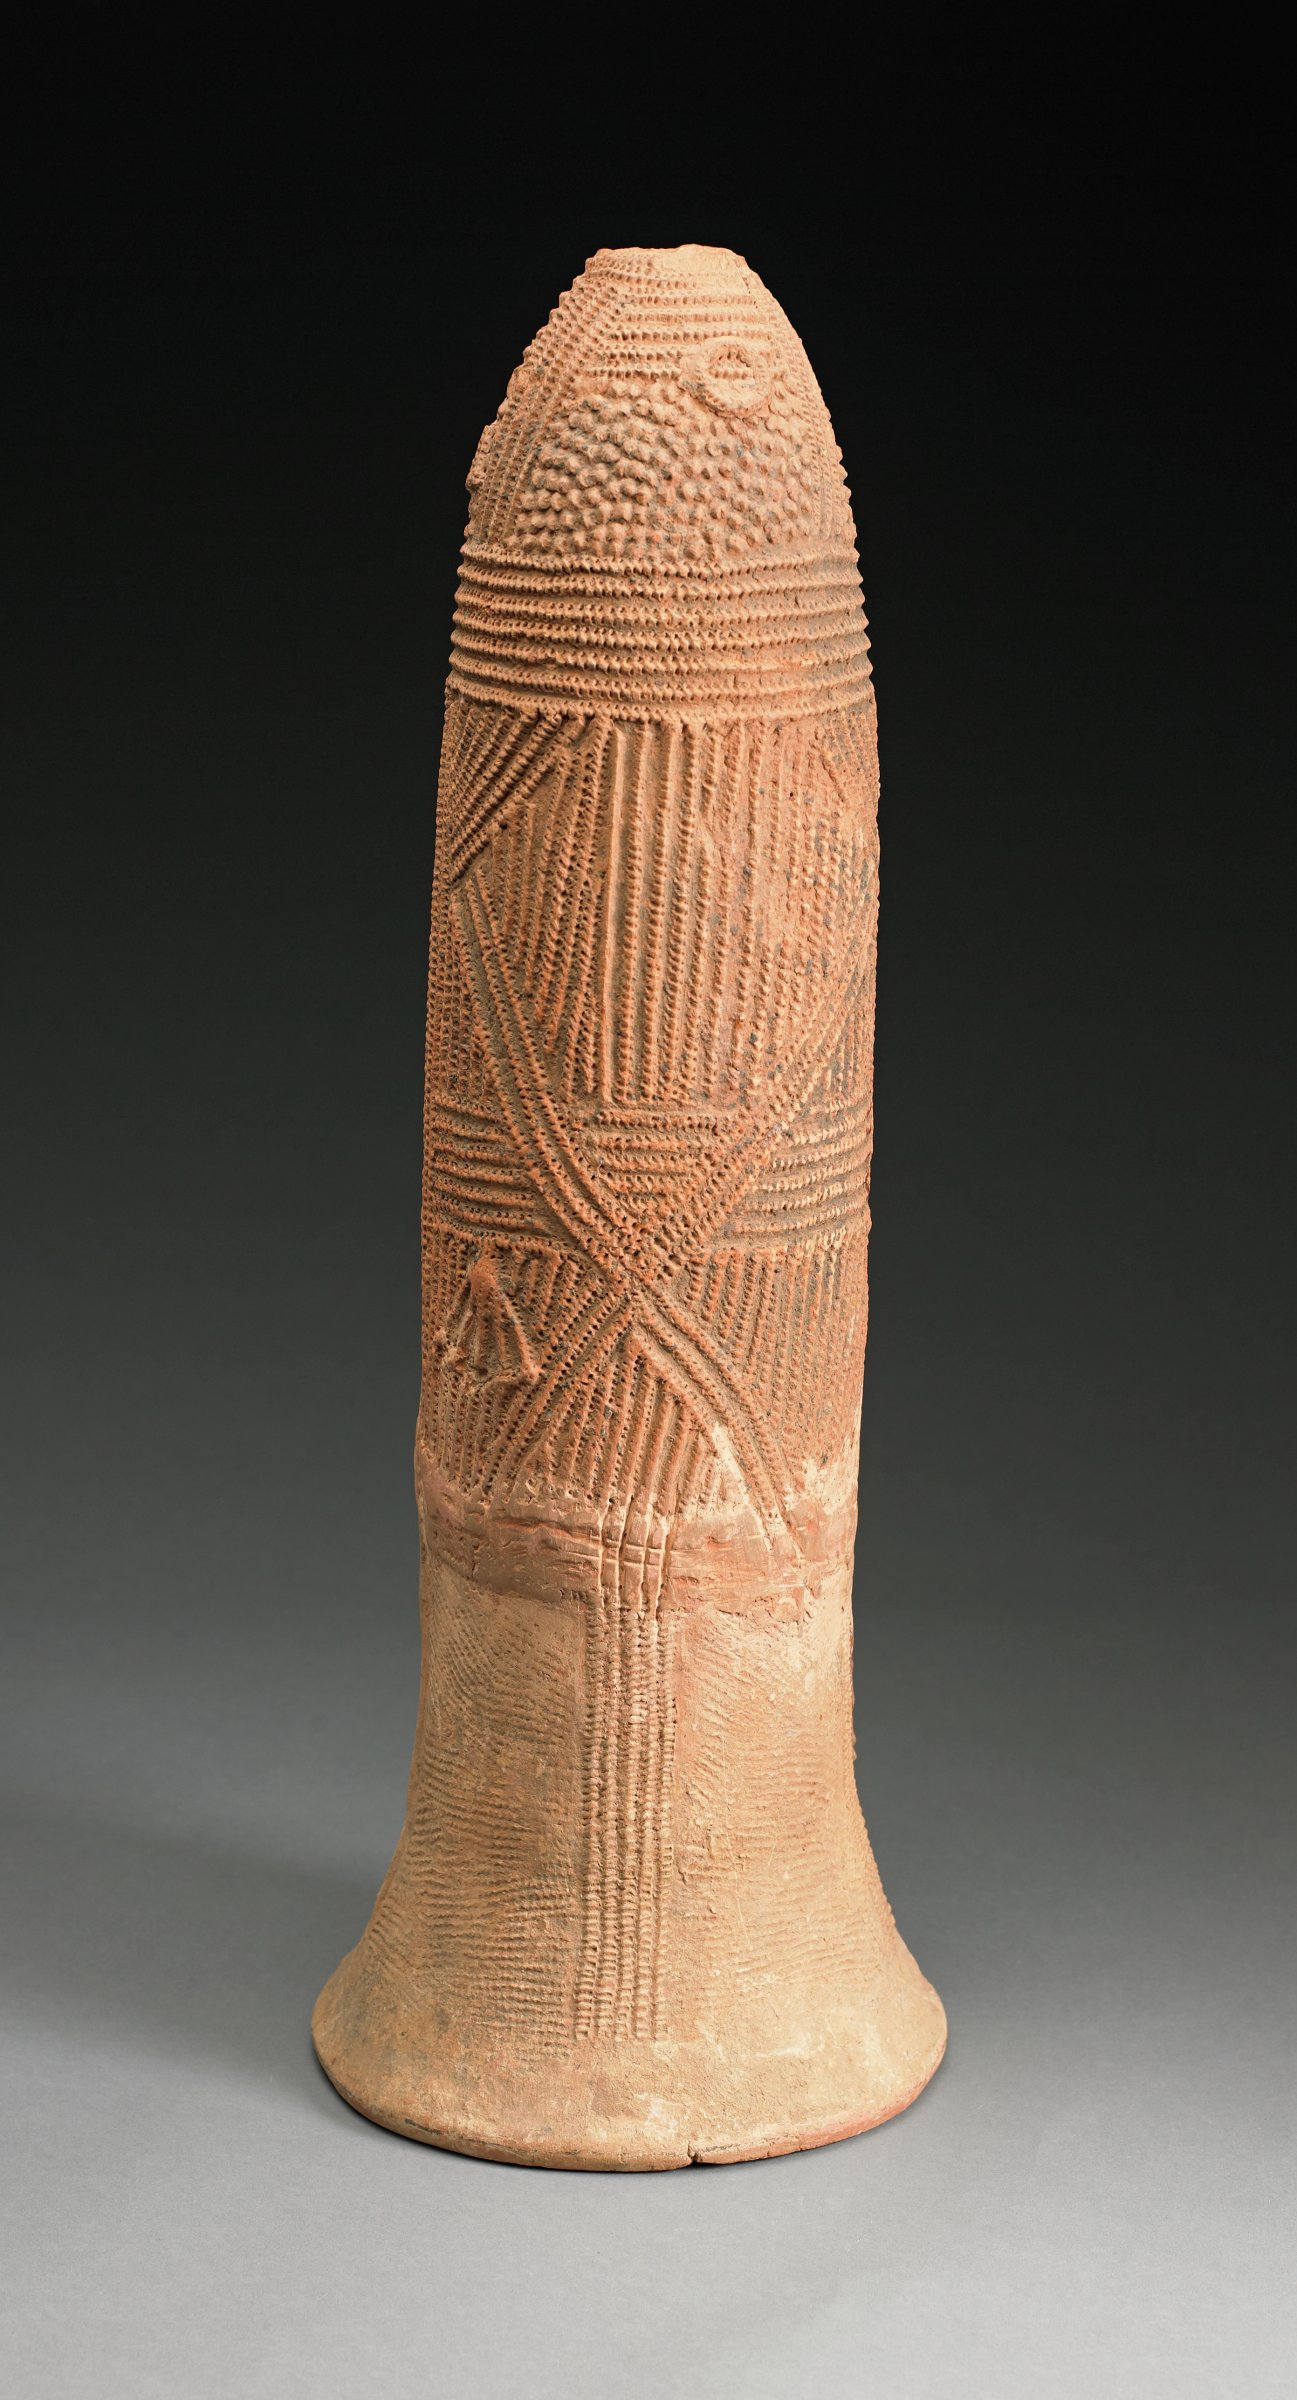 Phallic-shaped vessel with flared opening at the base, covered with patterns of reticulated ridges and raised bumps